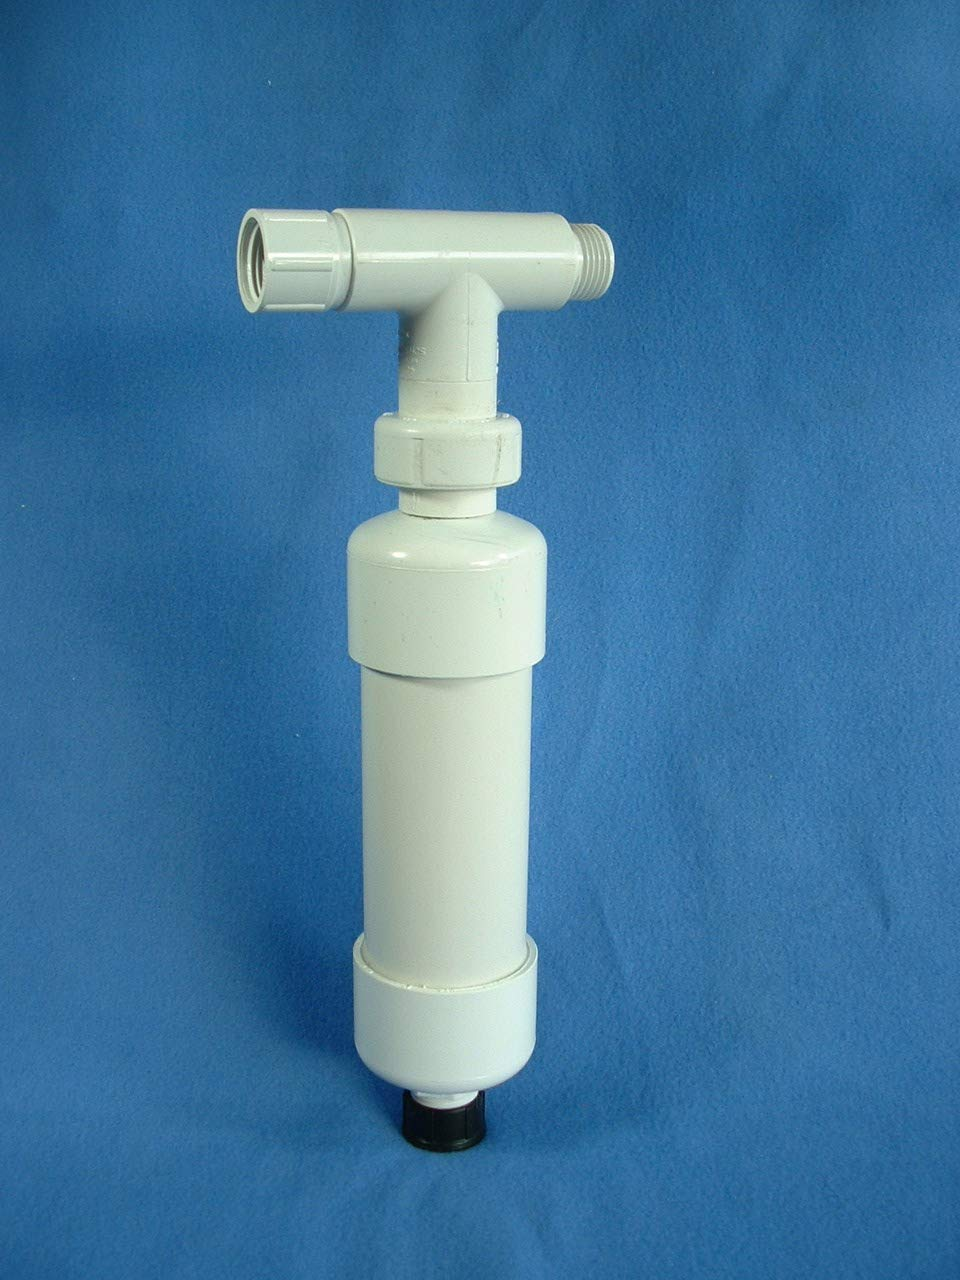 AquaFeed Pint Capacity Fertilizer Injector with /¾ Hose Threads and Vacuum Breaker Strong Injectors